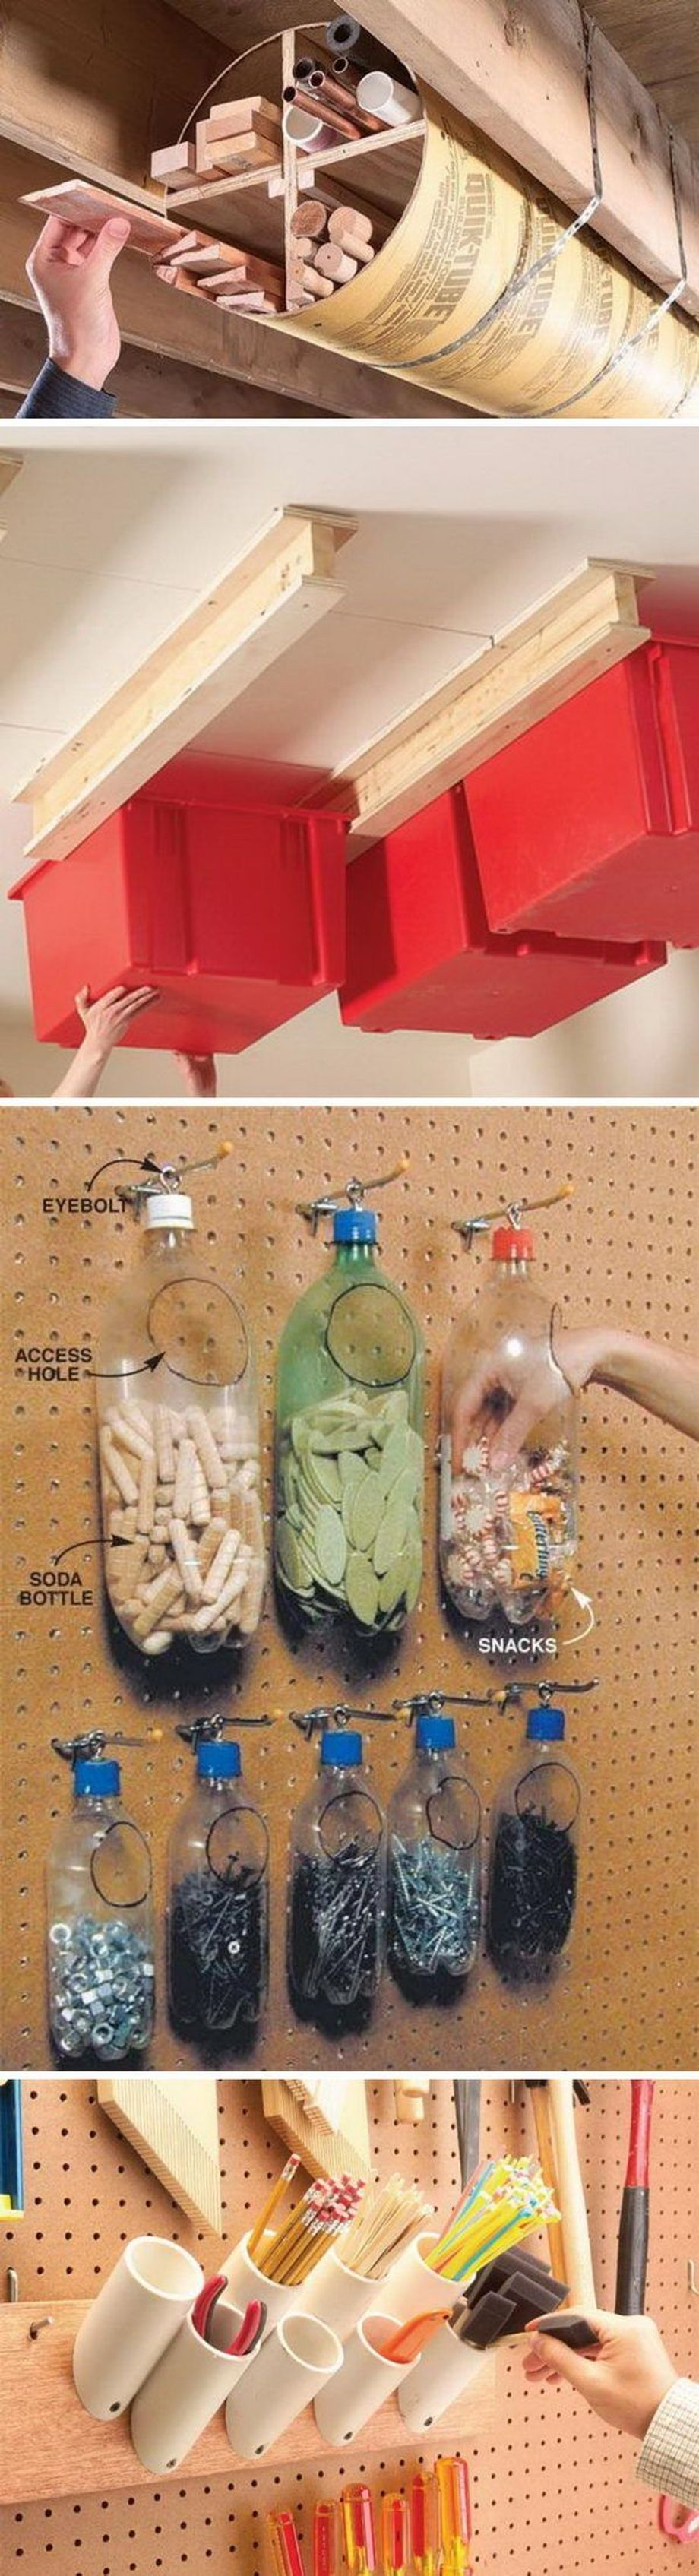 Best Garage Organization and Storage Hacks Ideas 1